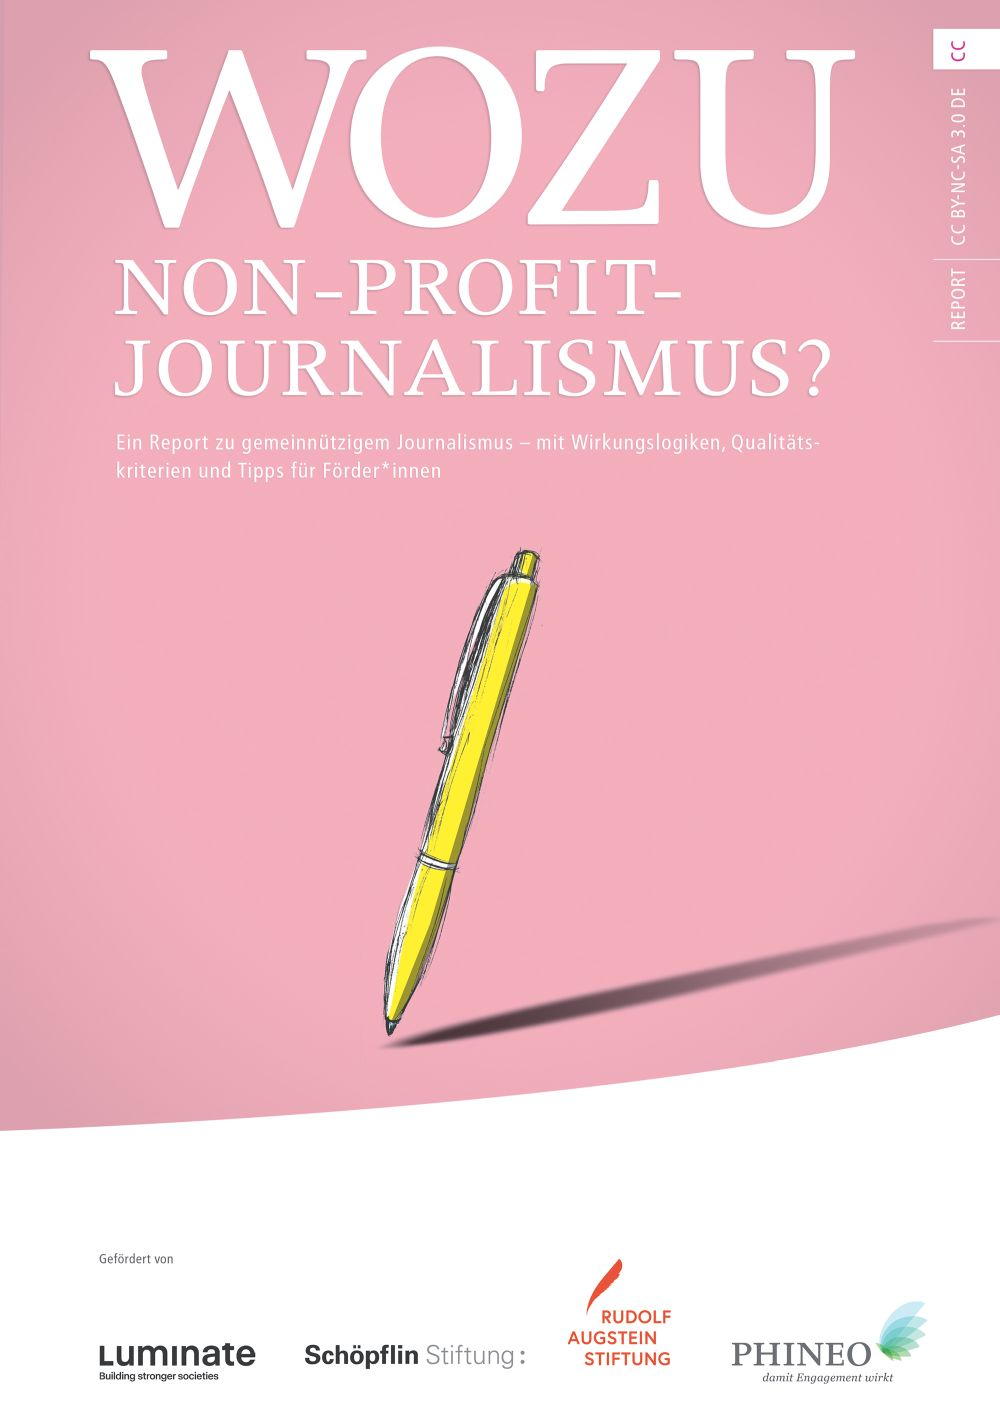 Phineo obs PHINEO gemeinnützige Aktiengesellschaft PHINEOgAG Report Non Profit Journalismus Cfr 2.000px